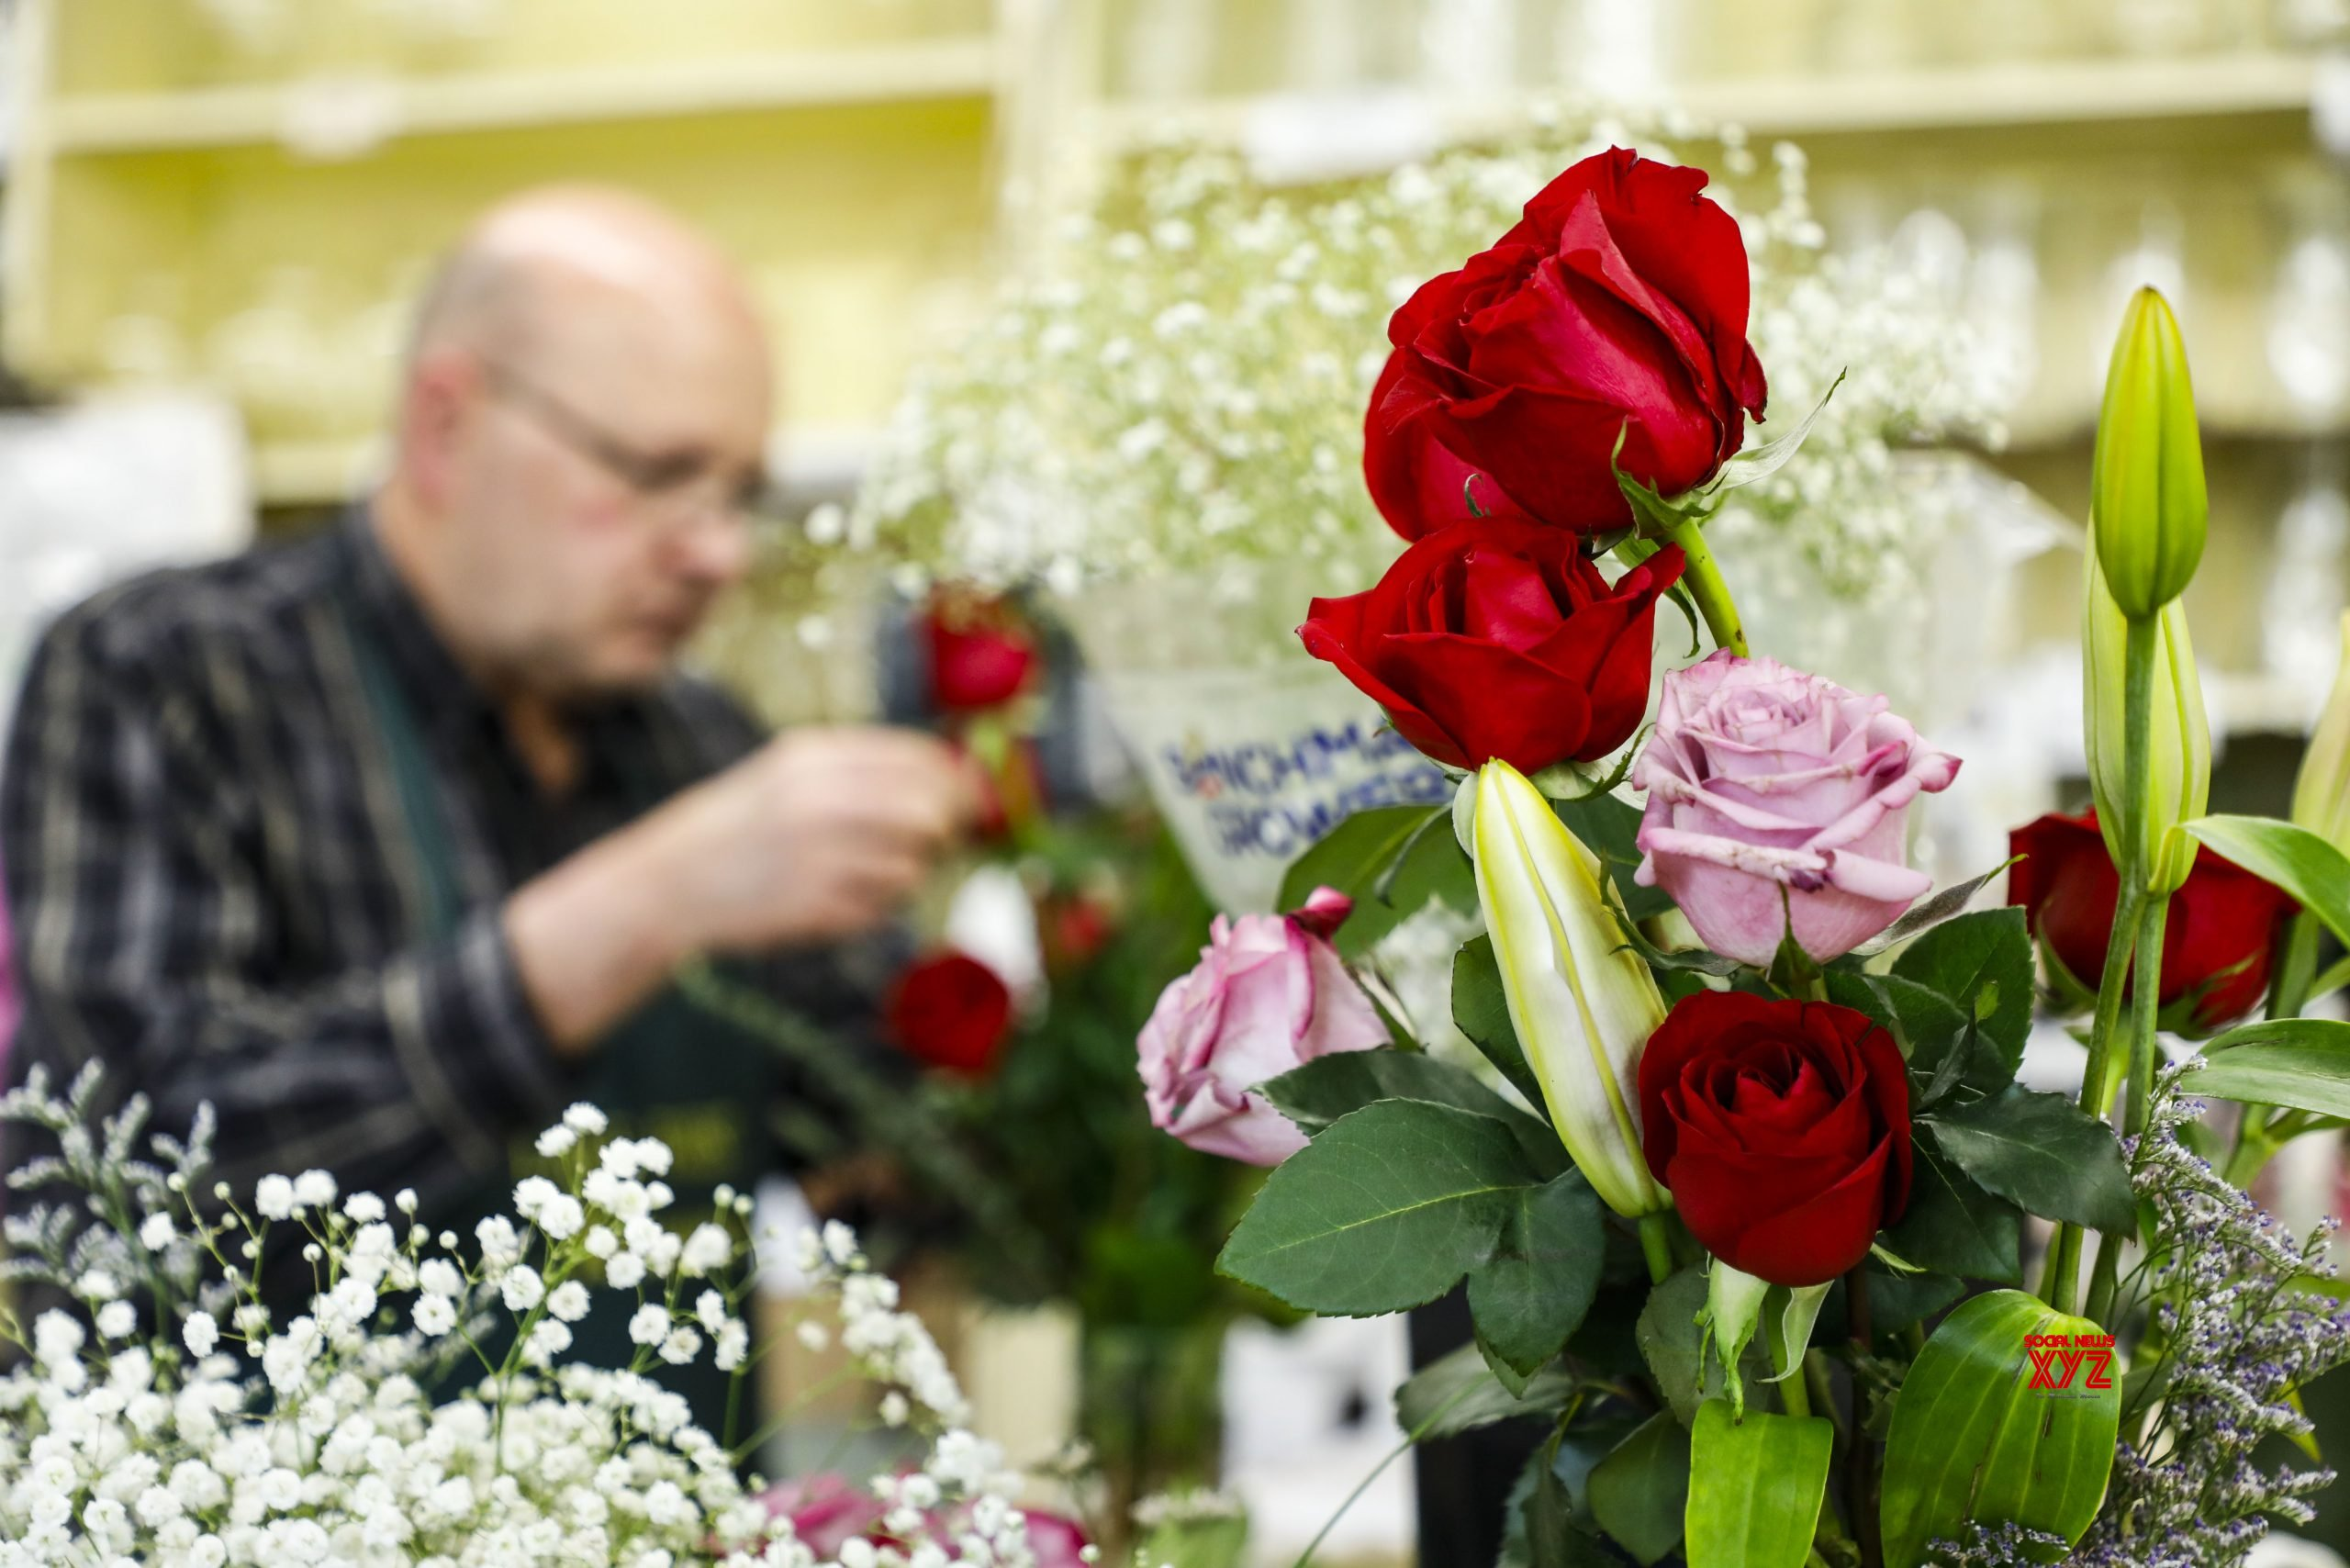 U.S. - ILLINOIS - LAKE FOREST FLOWERS - VALENTINE'S DAY #Gallery